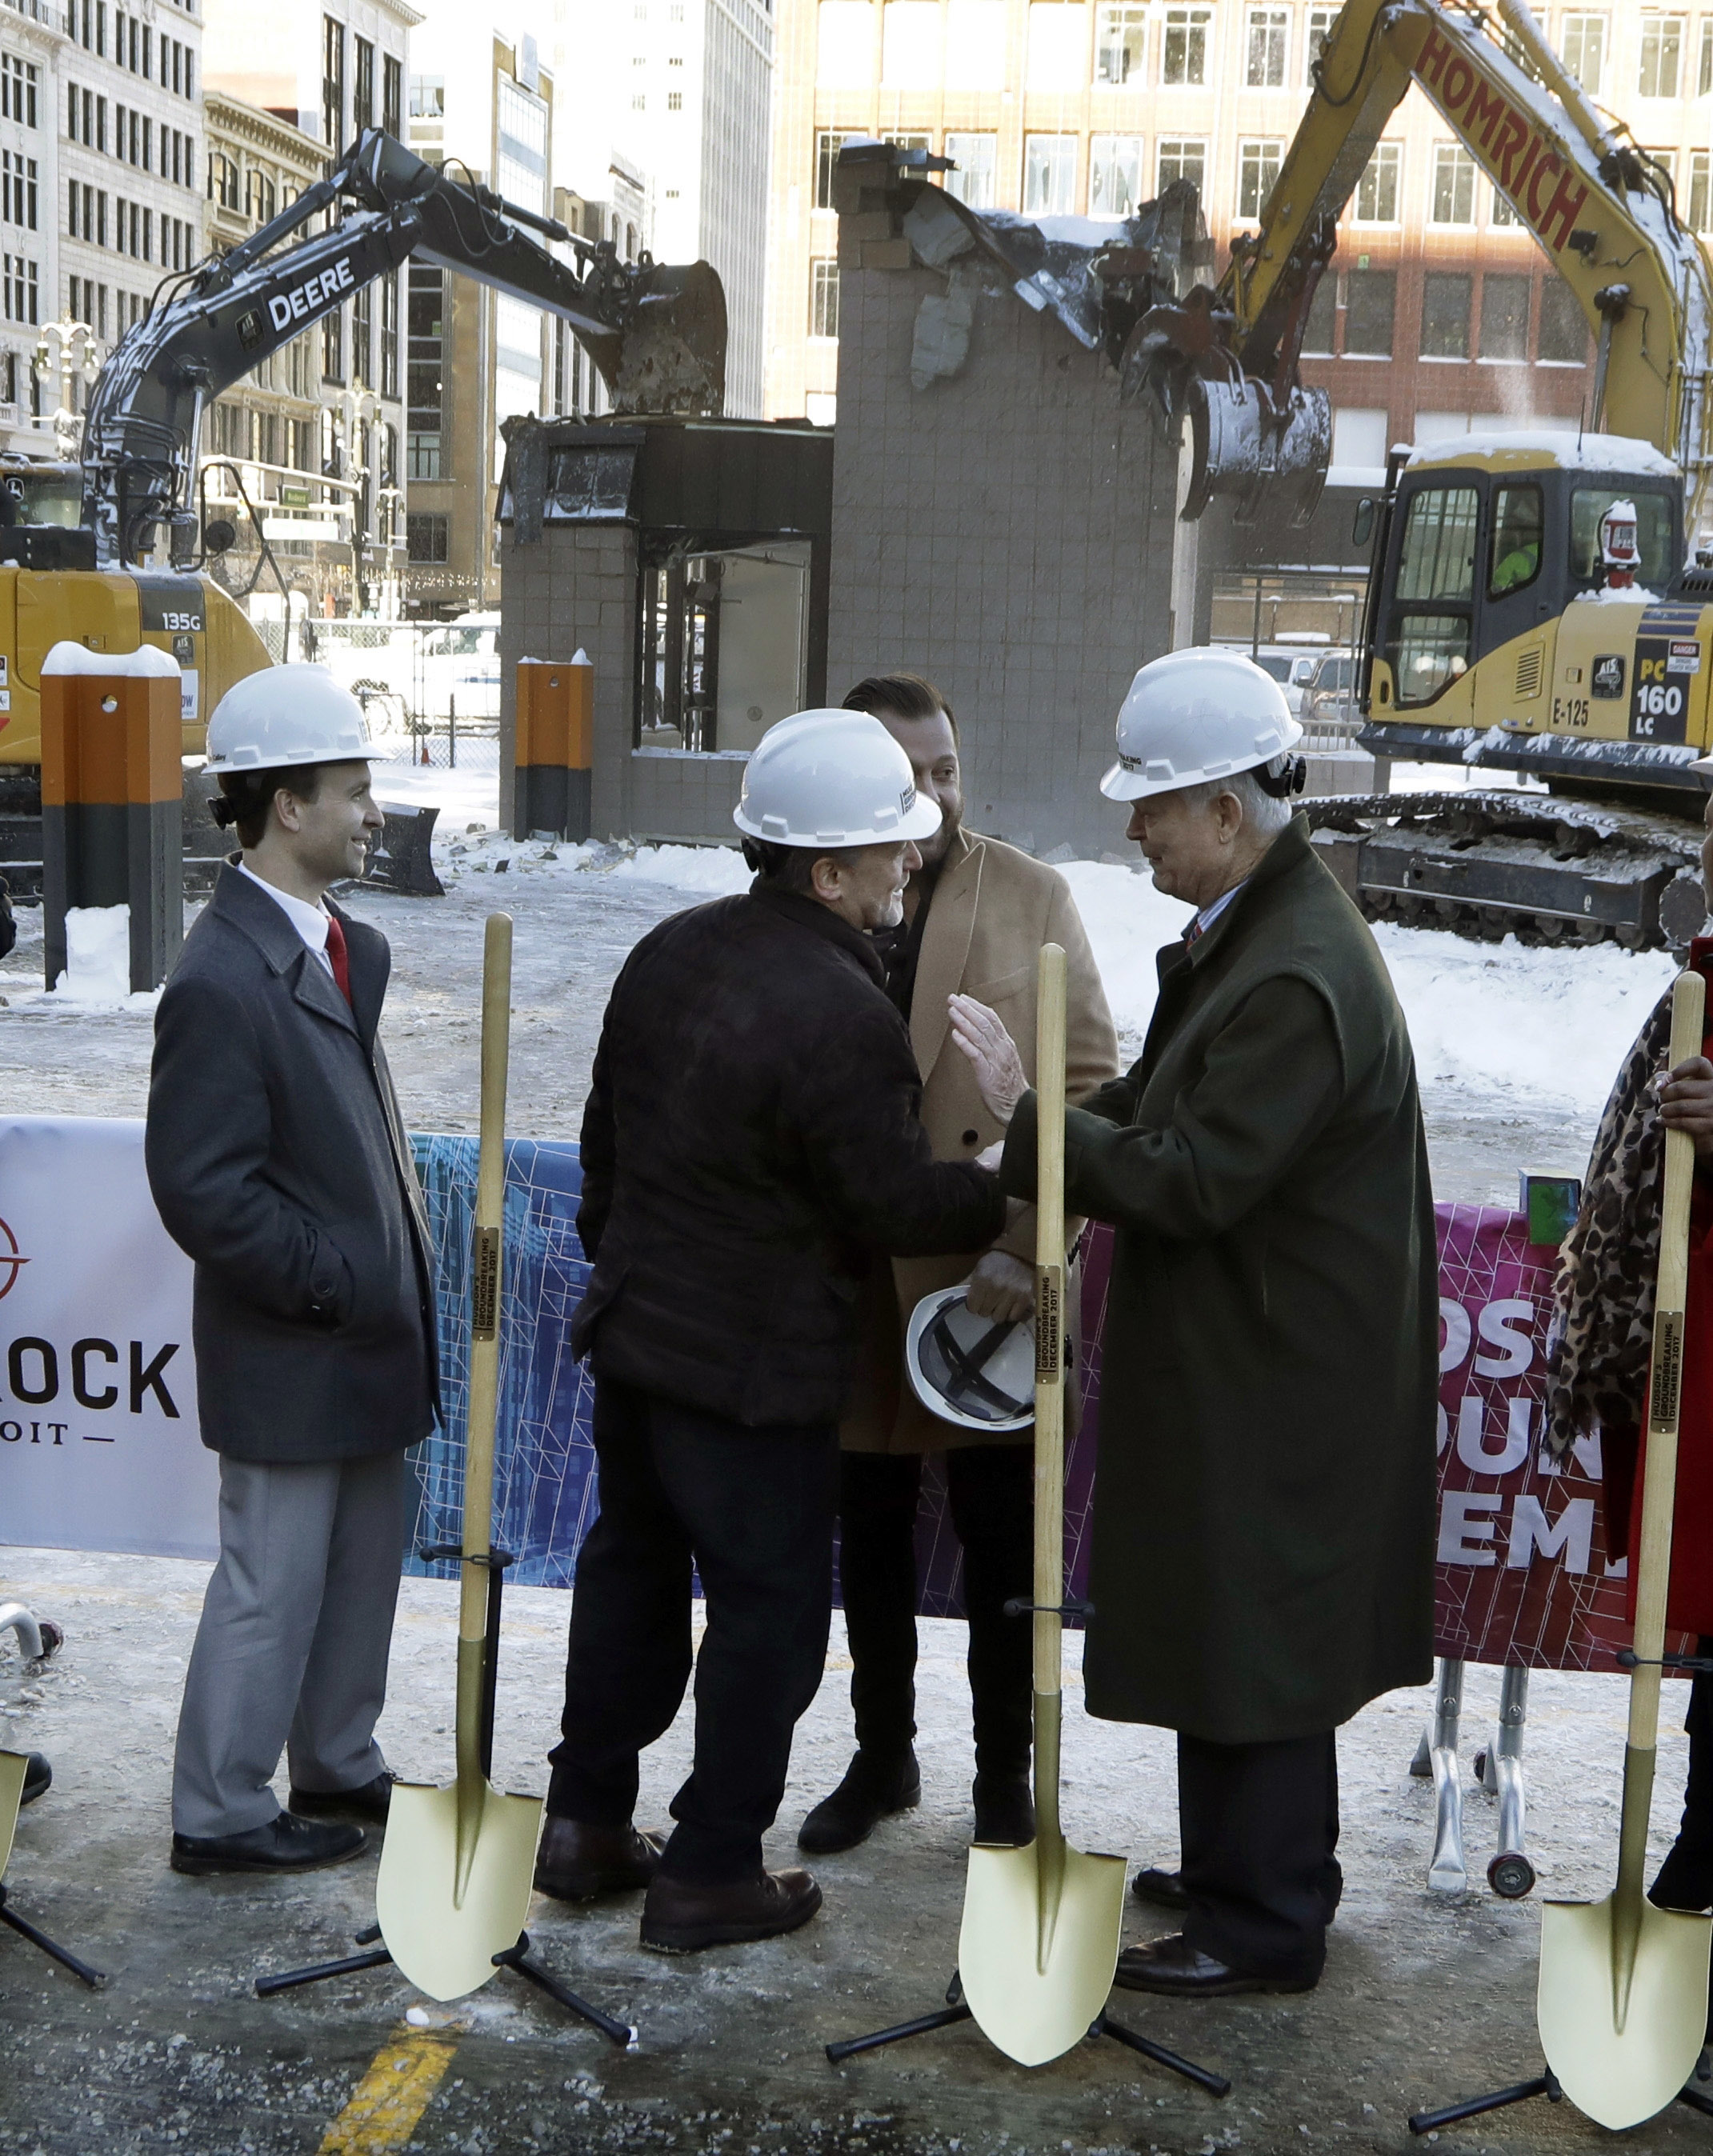 Quicken Loans founder Dan Gilbert, center, meets with Joe Hudson, former CEO of the J.L. Hudson Company at the groundbreaking site of the city's new 800-foot-tall building, Dec. 14, 2017, in Detroit. Bedrock Detroit real estate says the $900 million ...